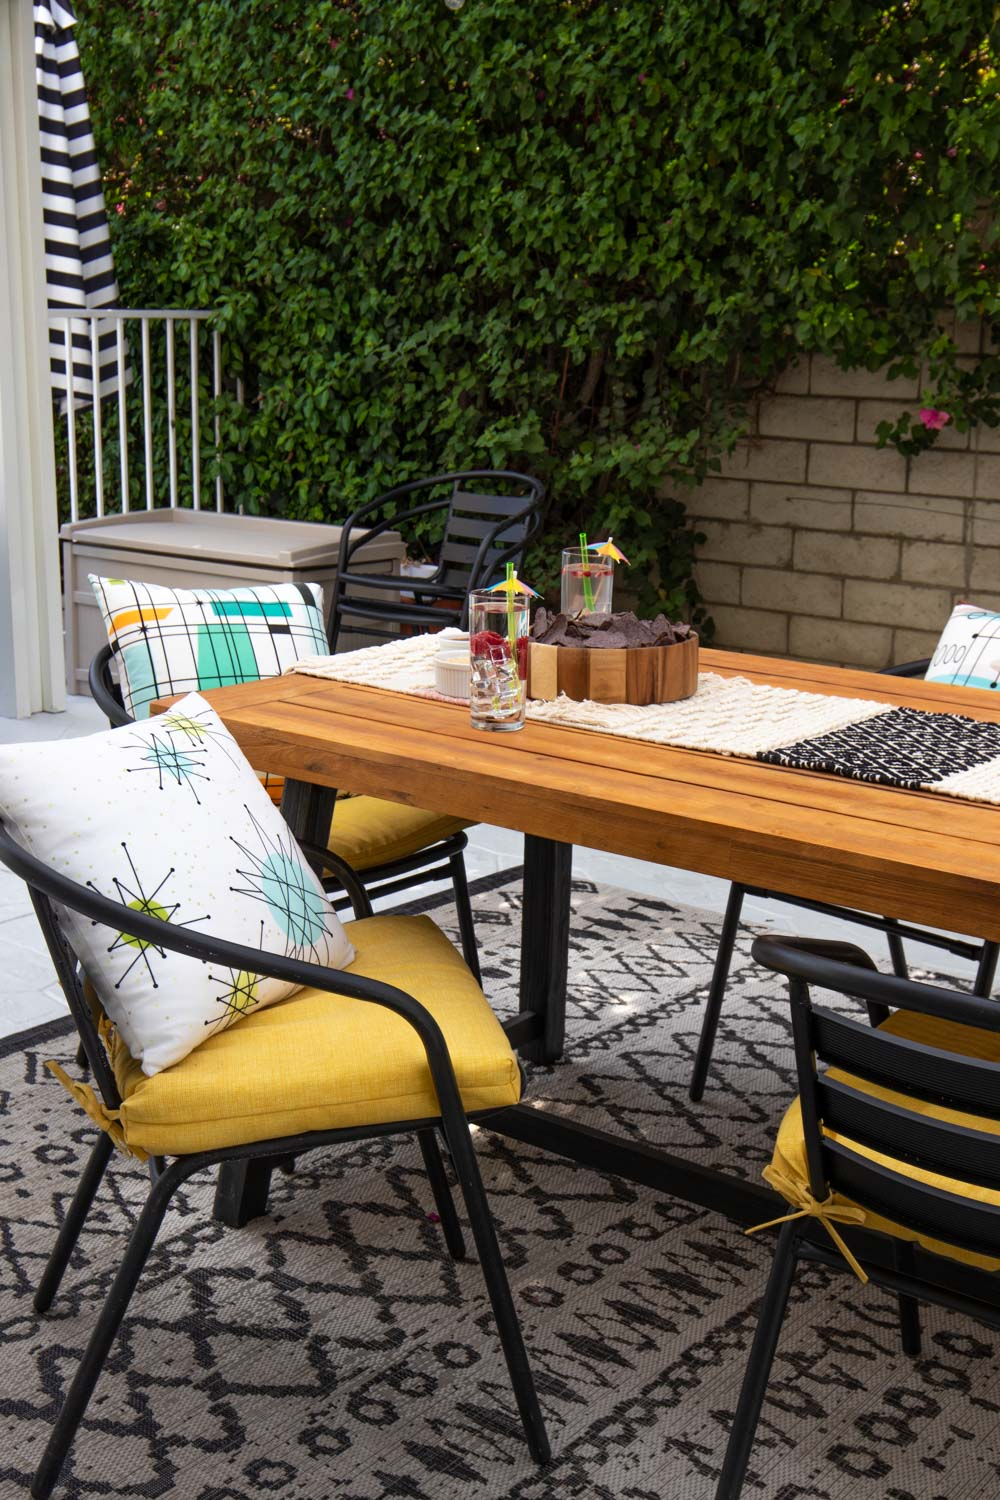 backyard oasis with table, chairs and decor from wayfair